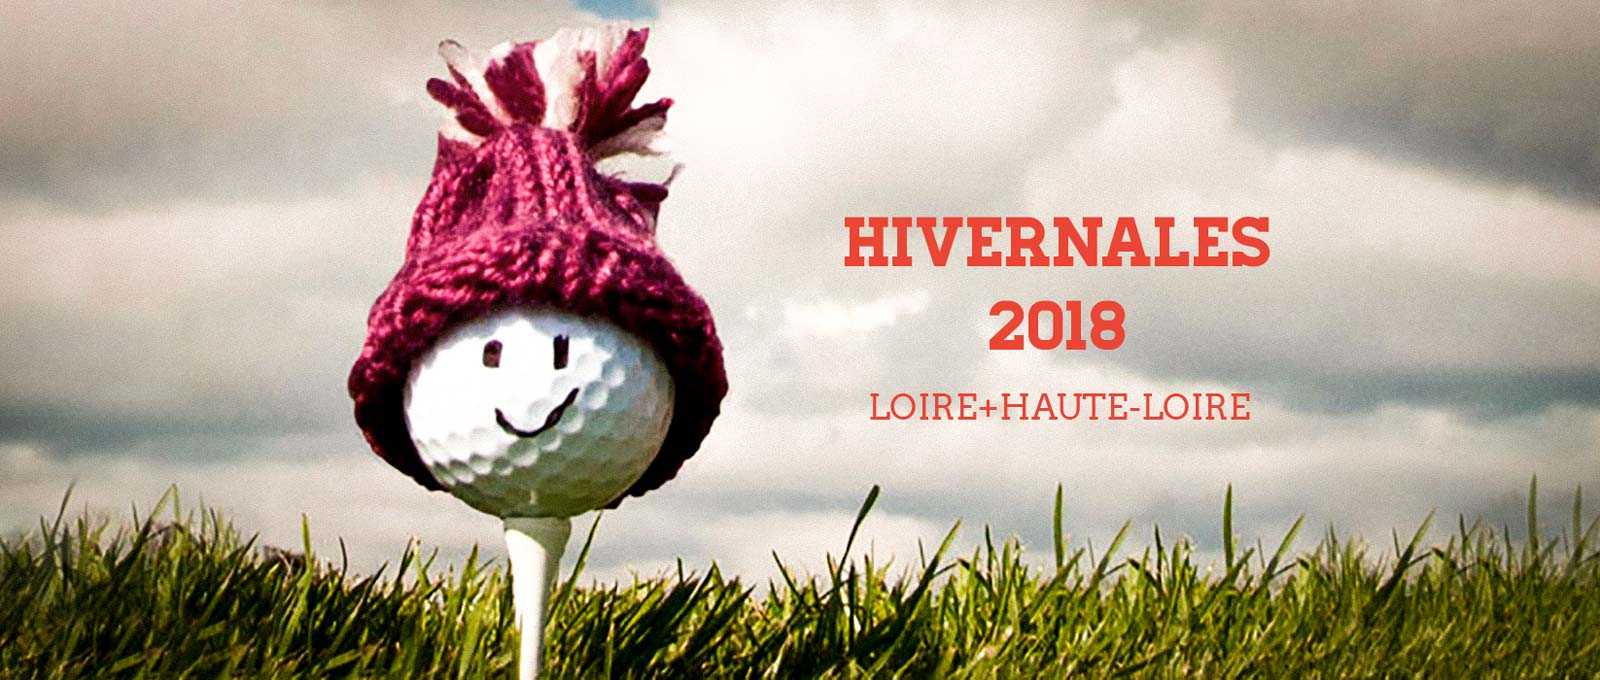 Hivernales 2018 titles